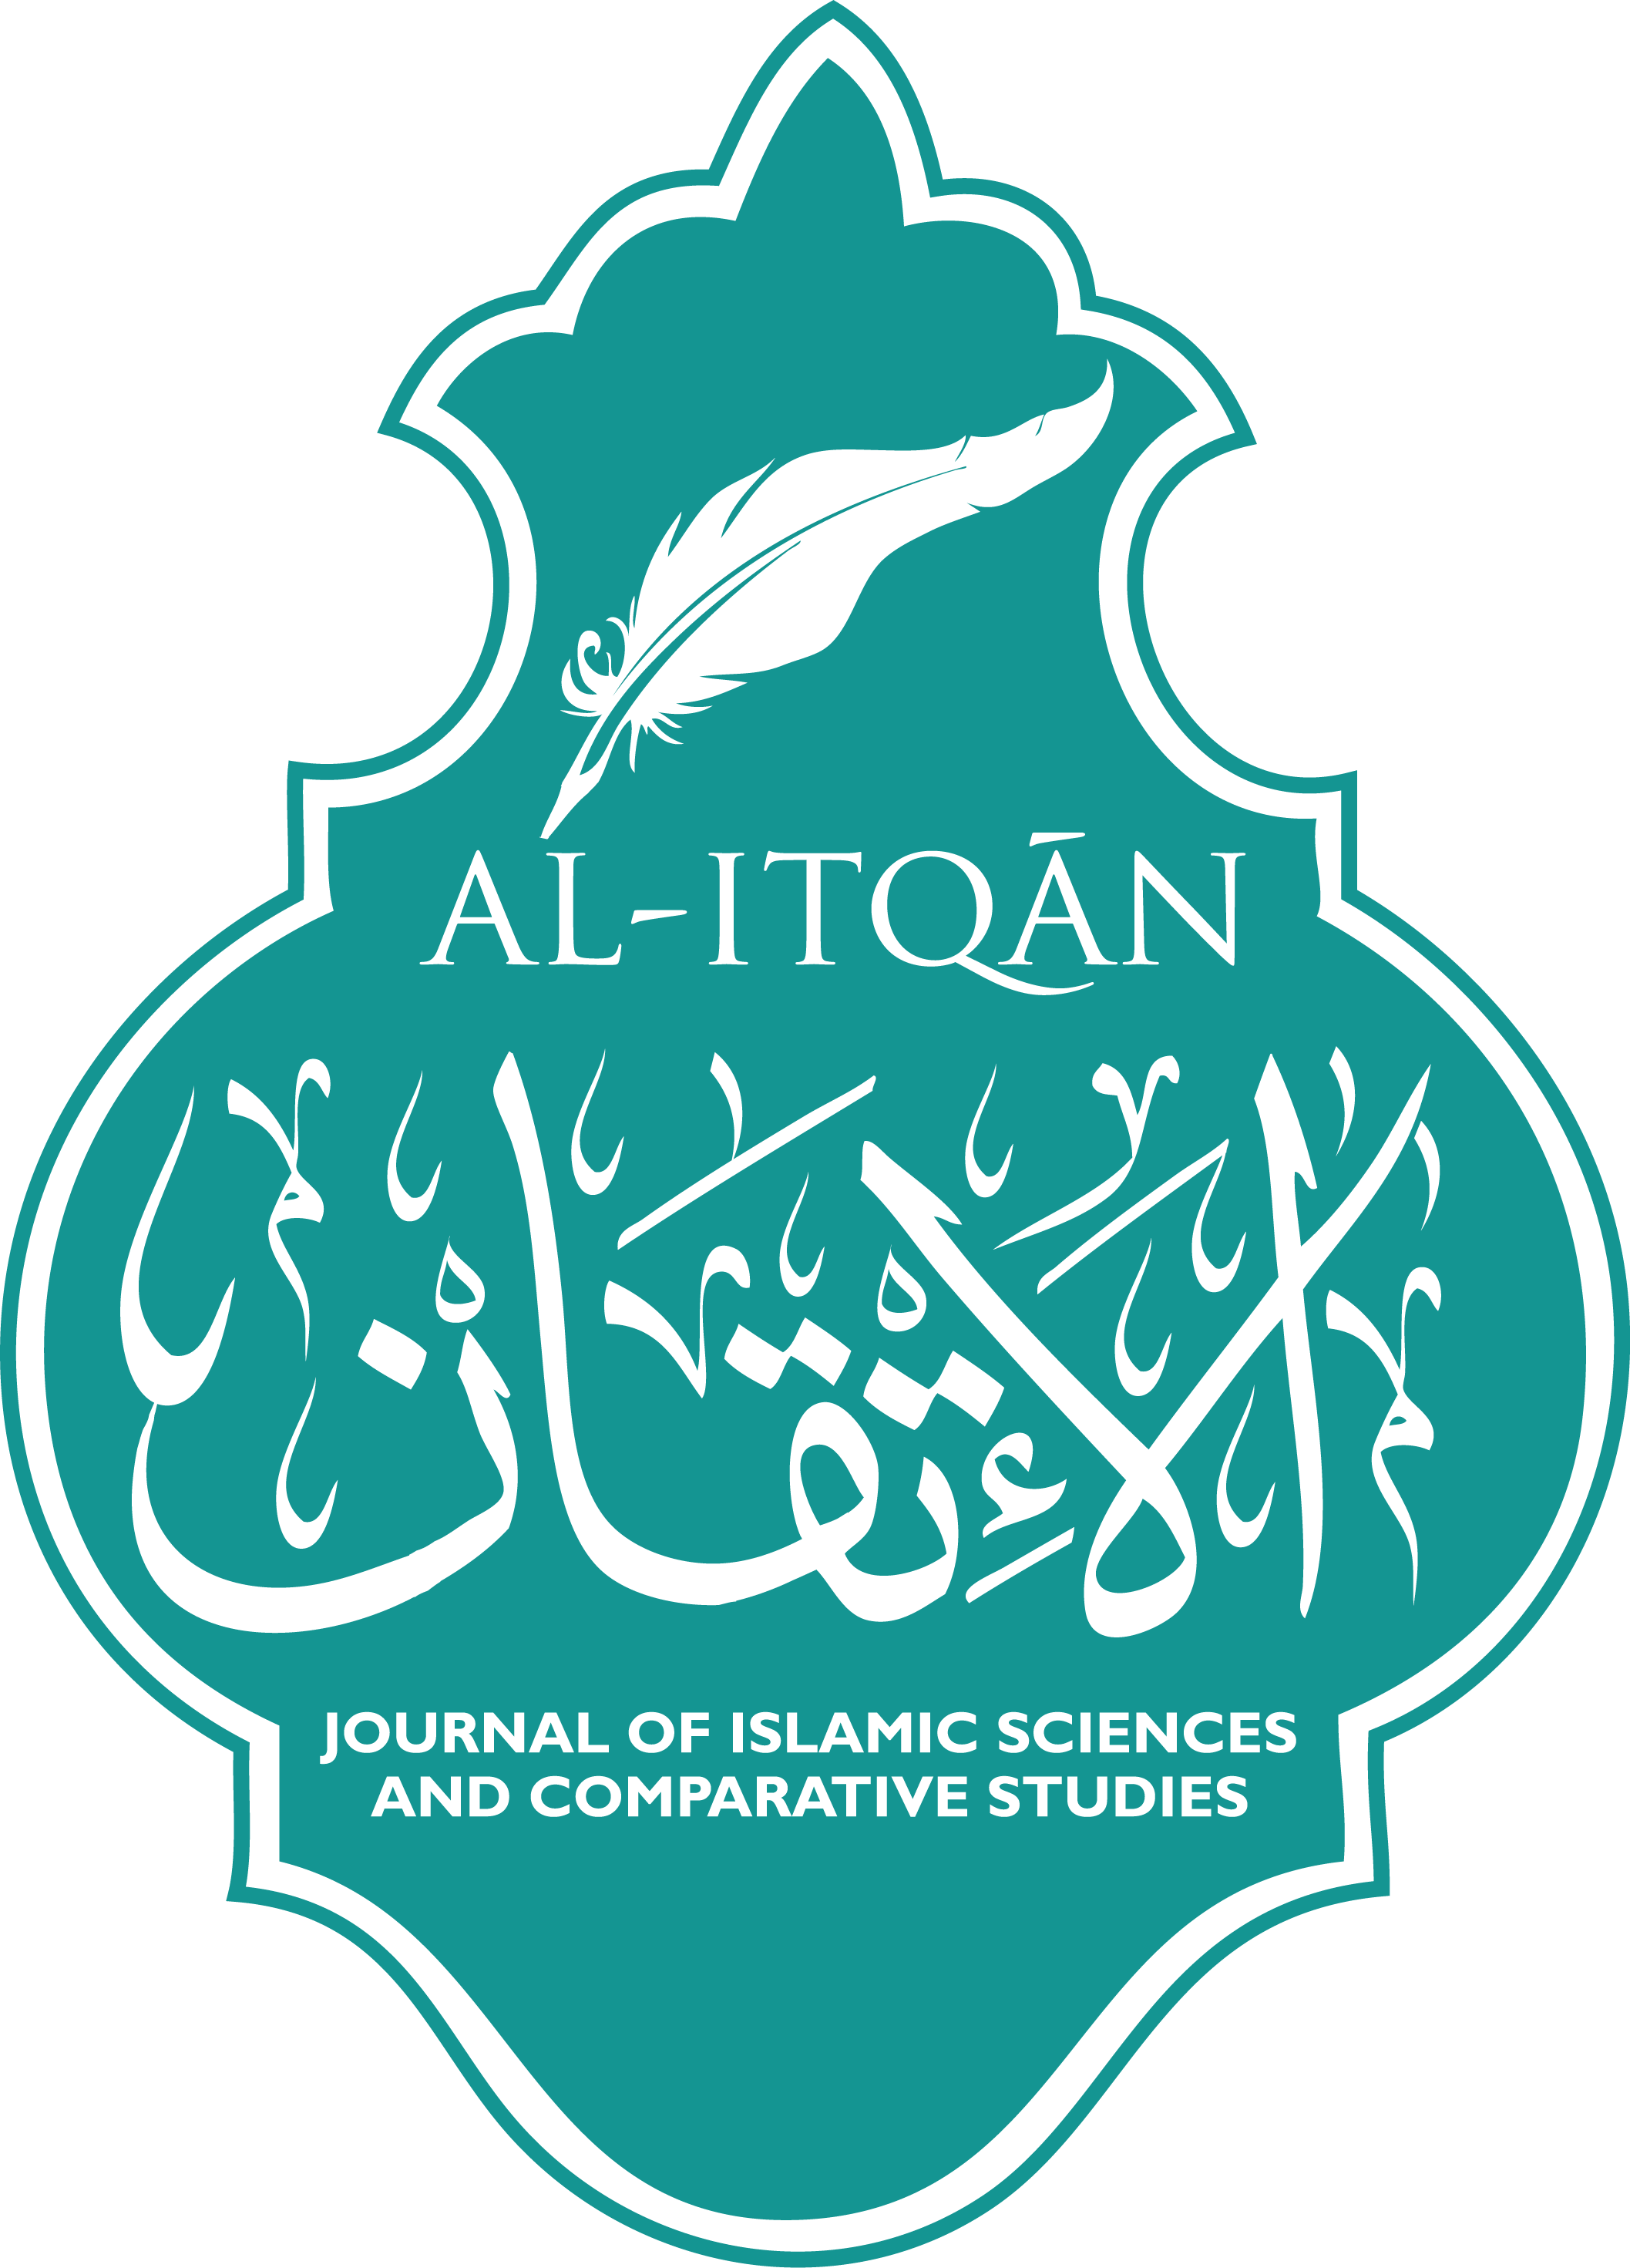 AL-ITQAN : JOURNAL OF ISLAMIC SCIENCES AND COMPARATIVE STUDIES